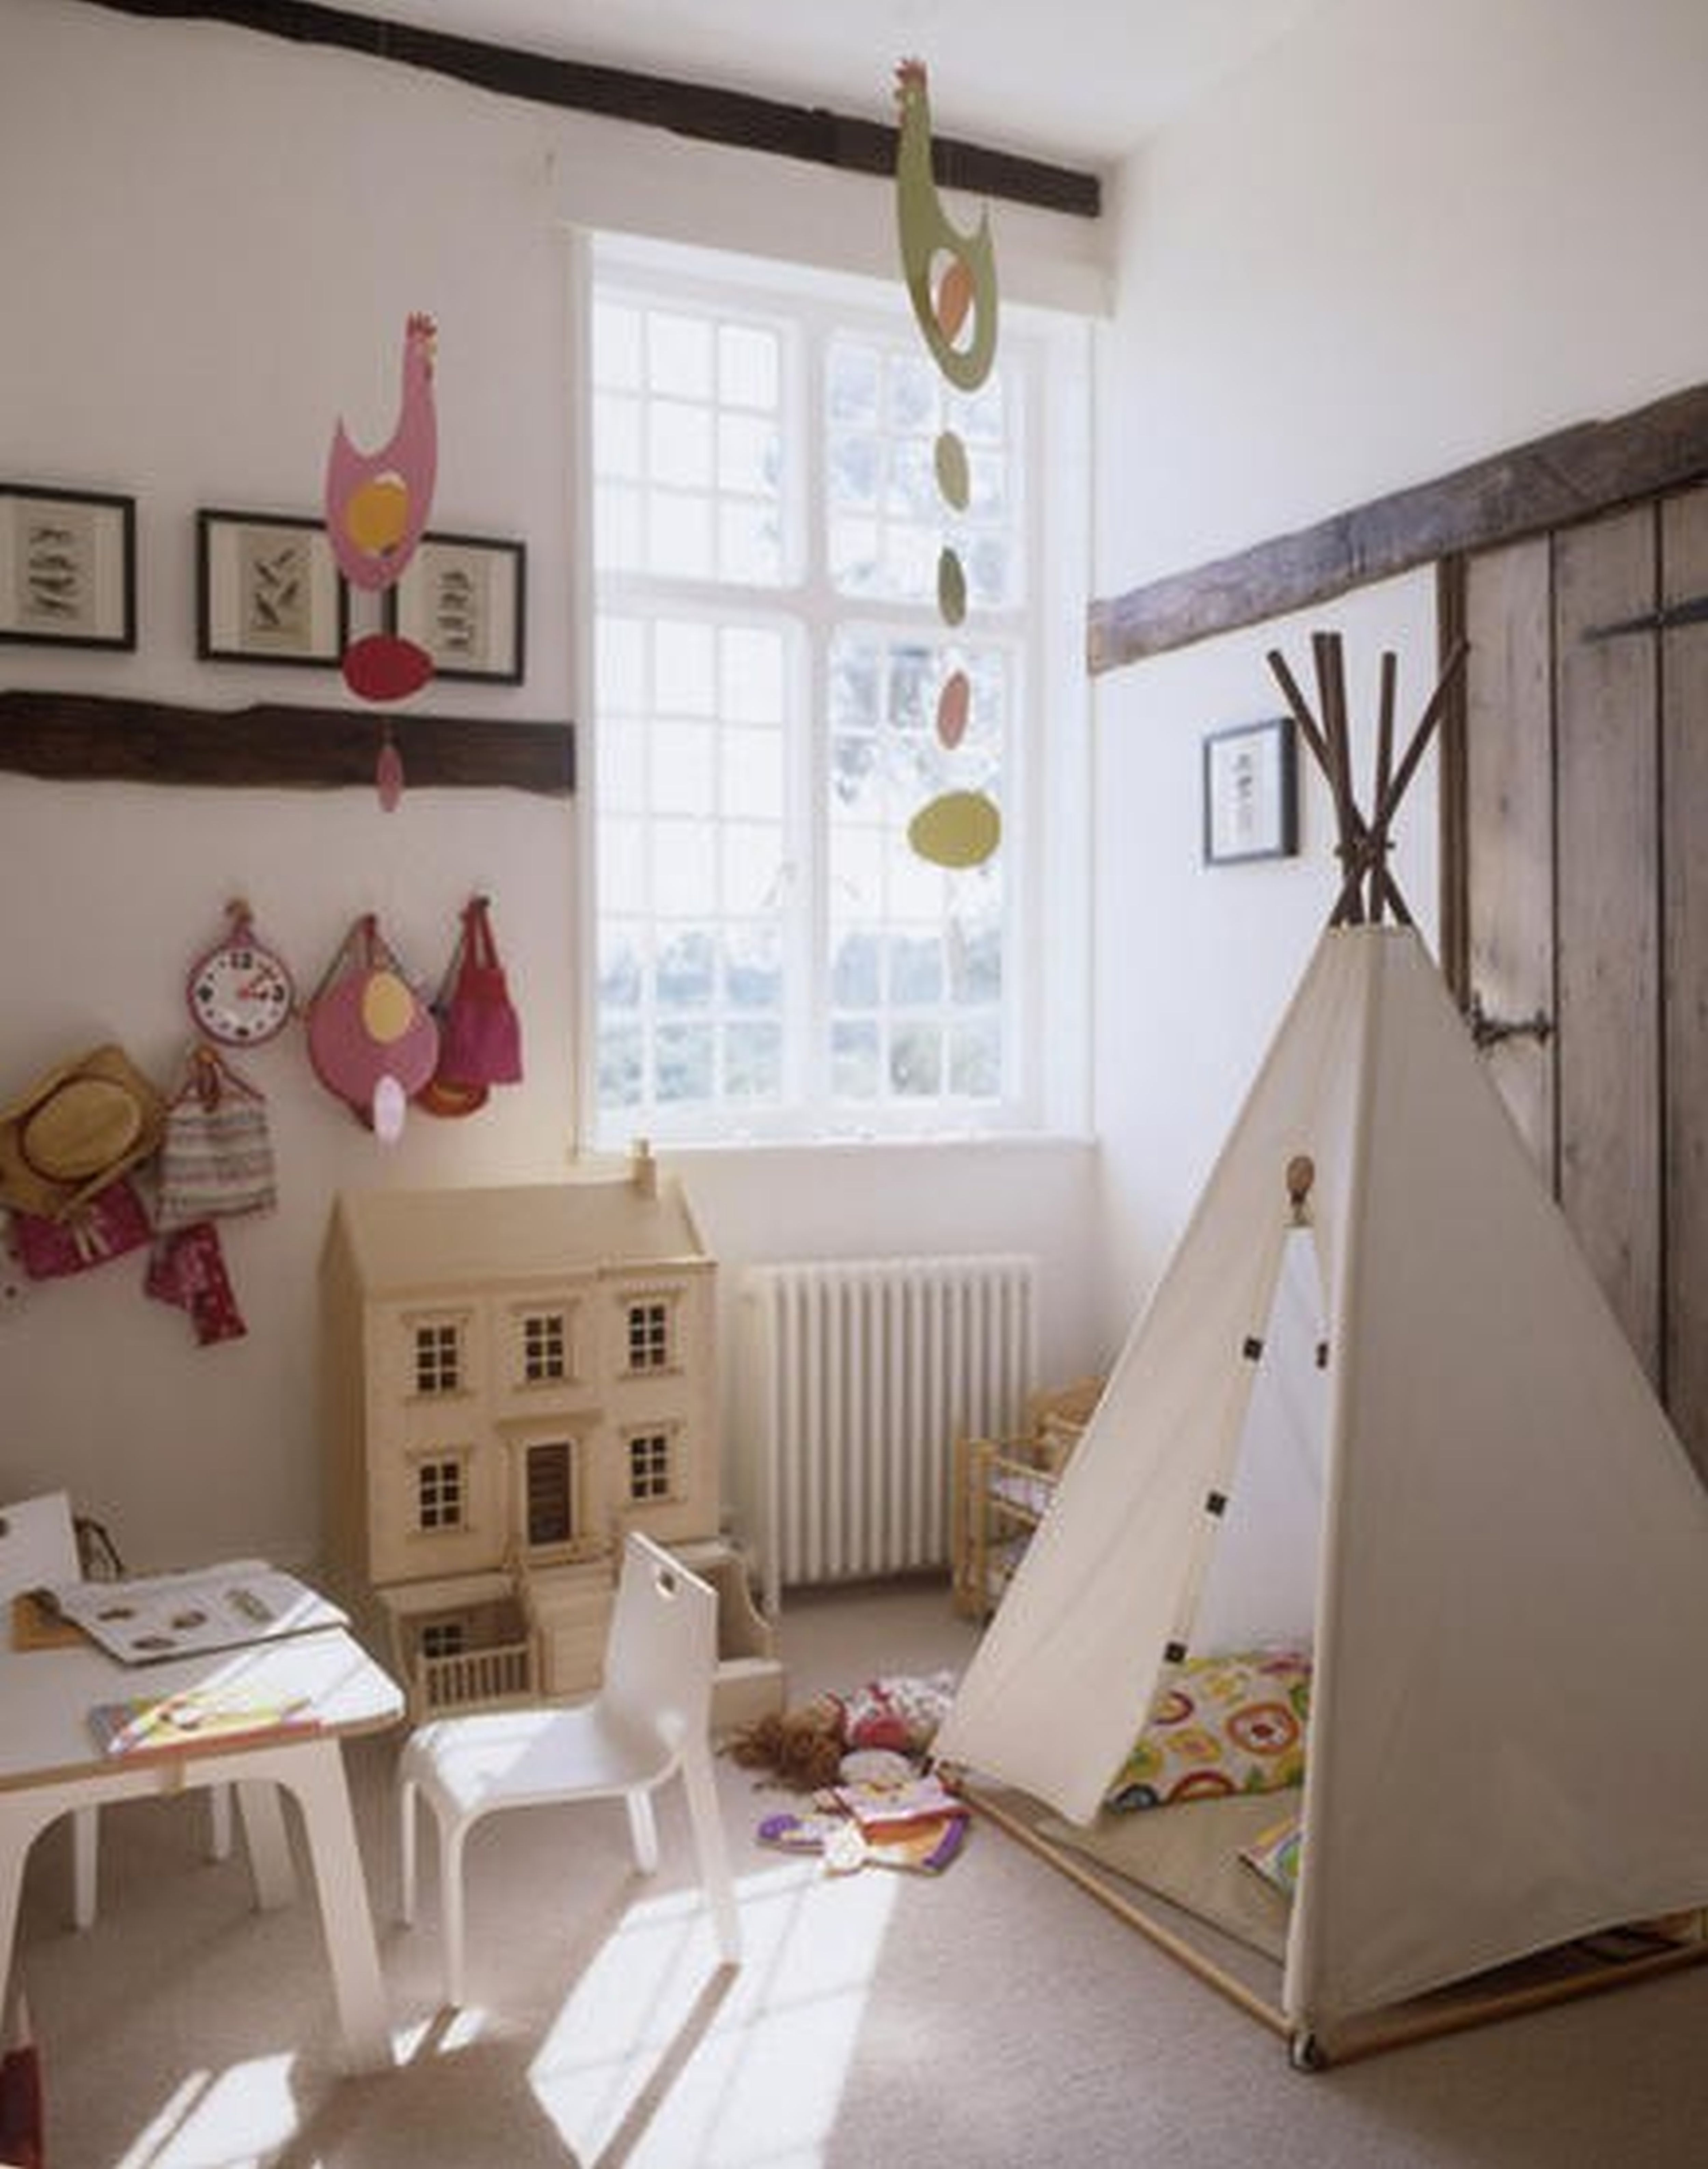 Amazing Kids Room Decor With Tent Also Mini Table Set As Well As ...